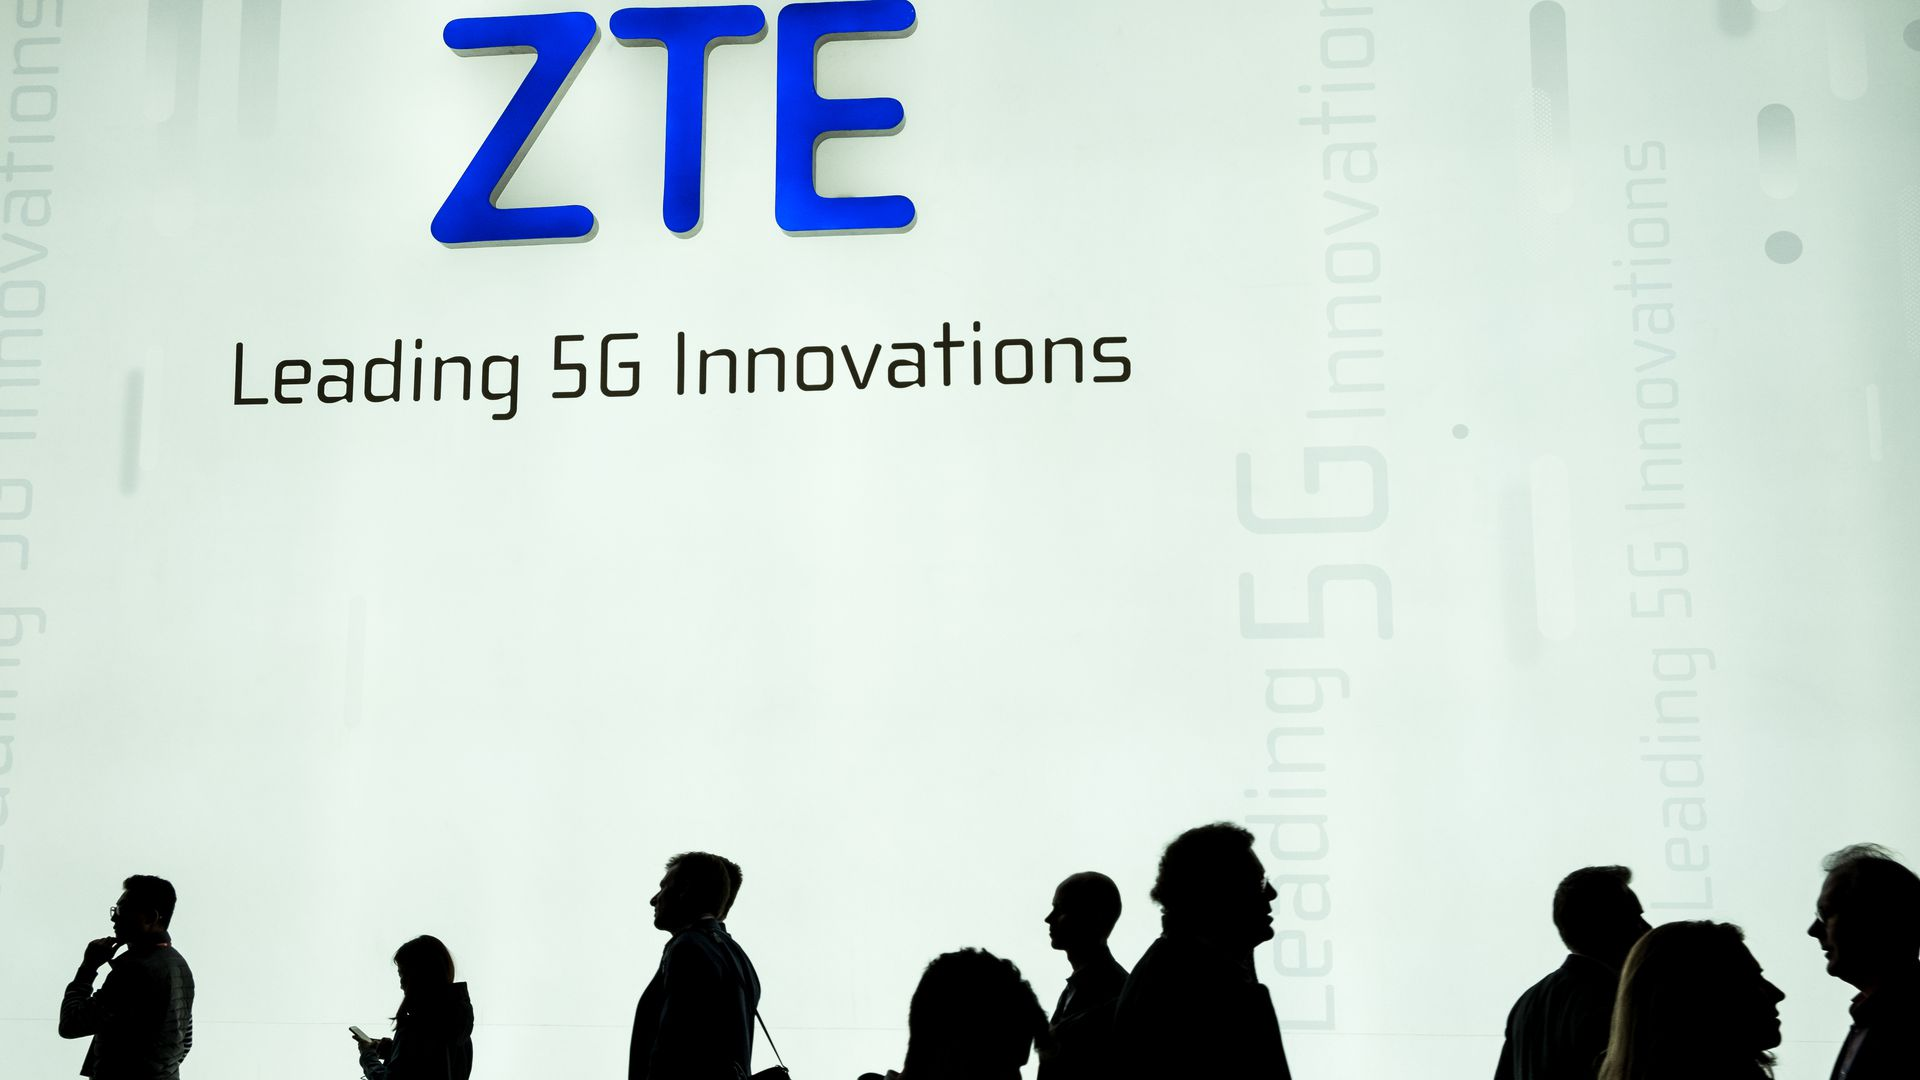 ZTE logo on white wall at a corporate event